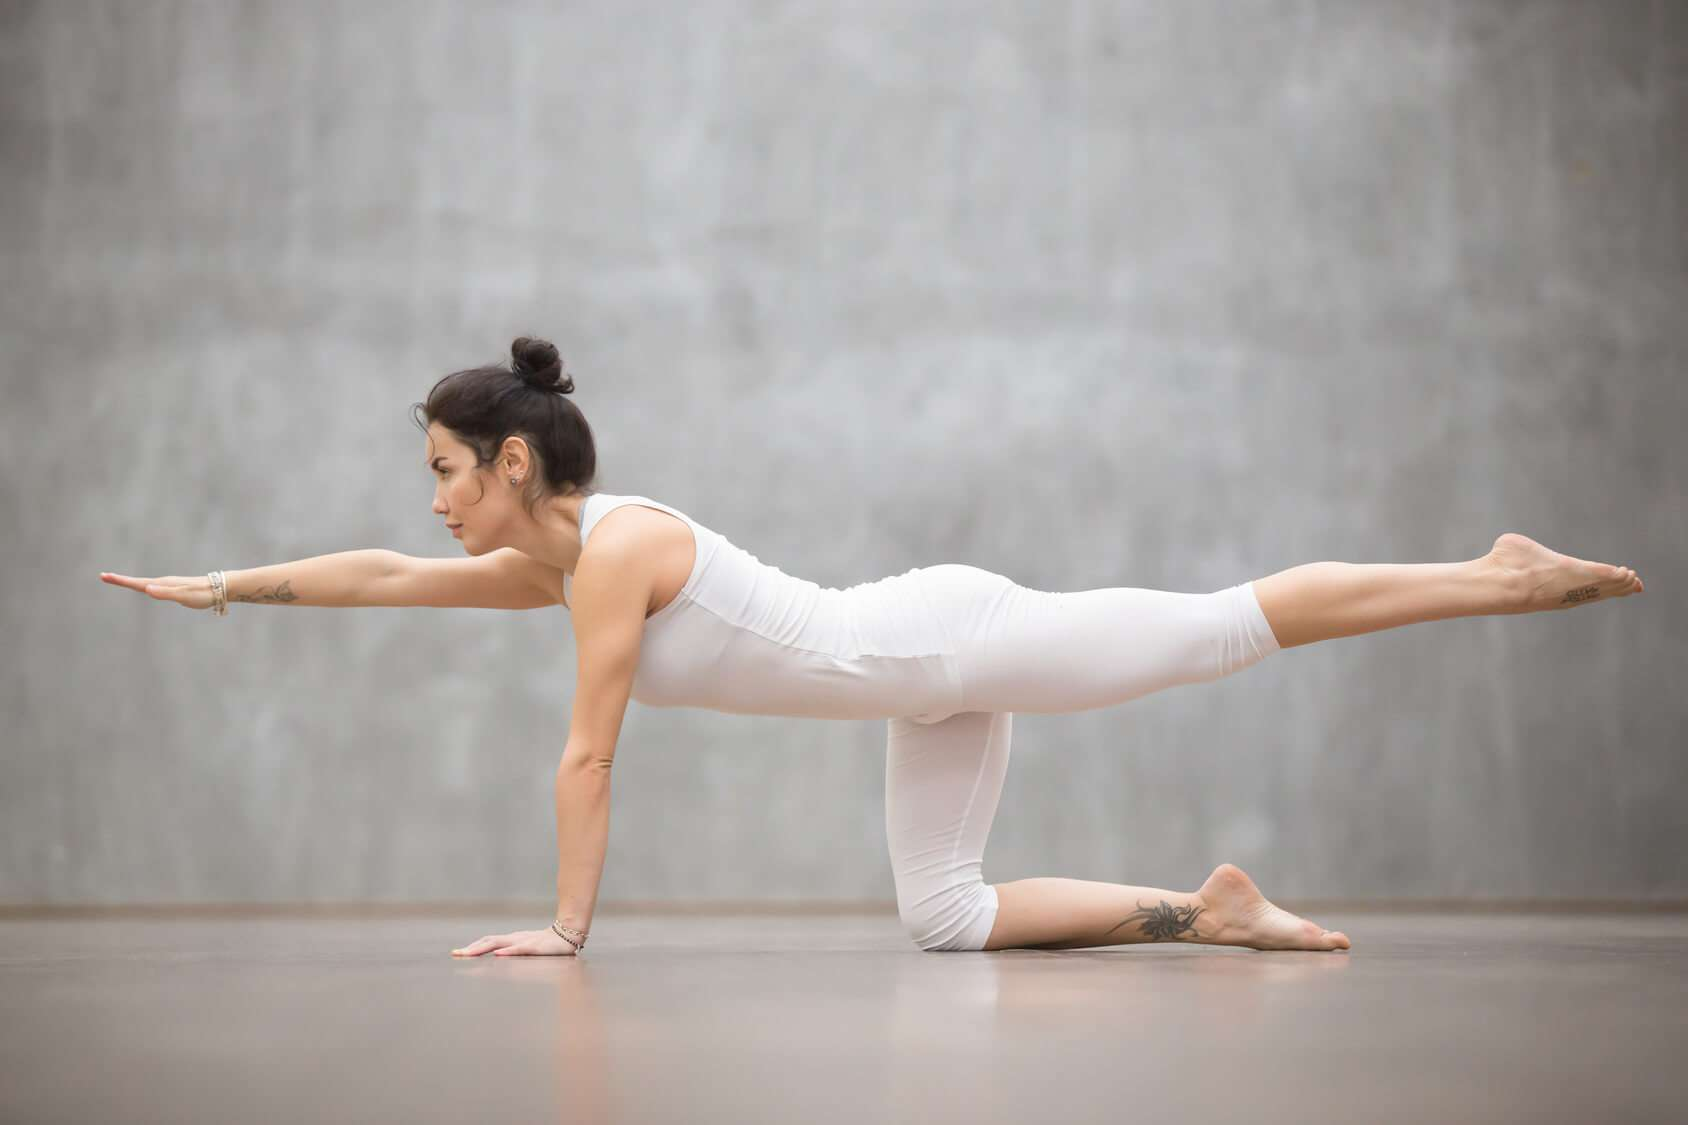 The bird dog yoga pose being performed can help stabilize the lower back.